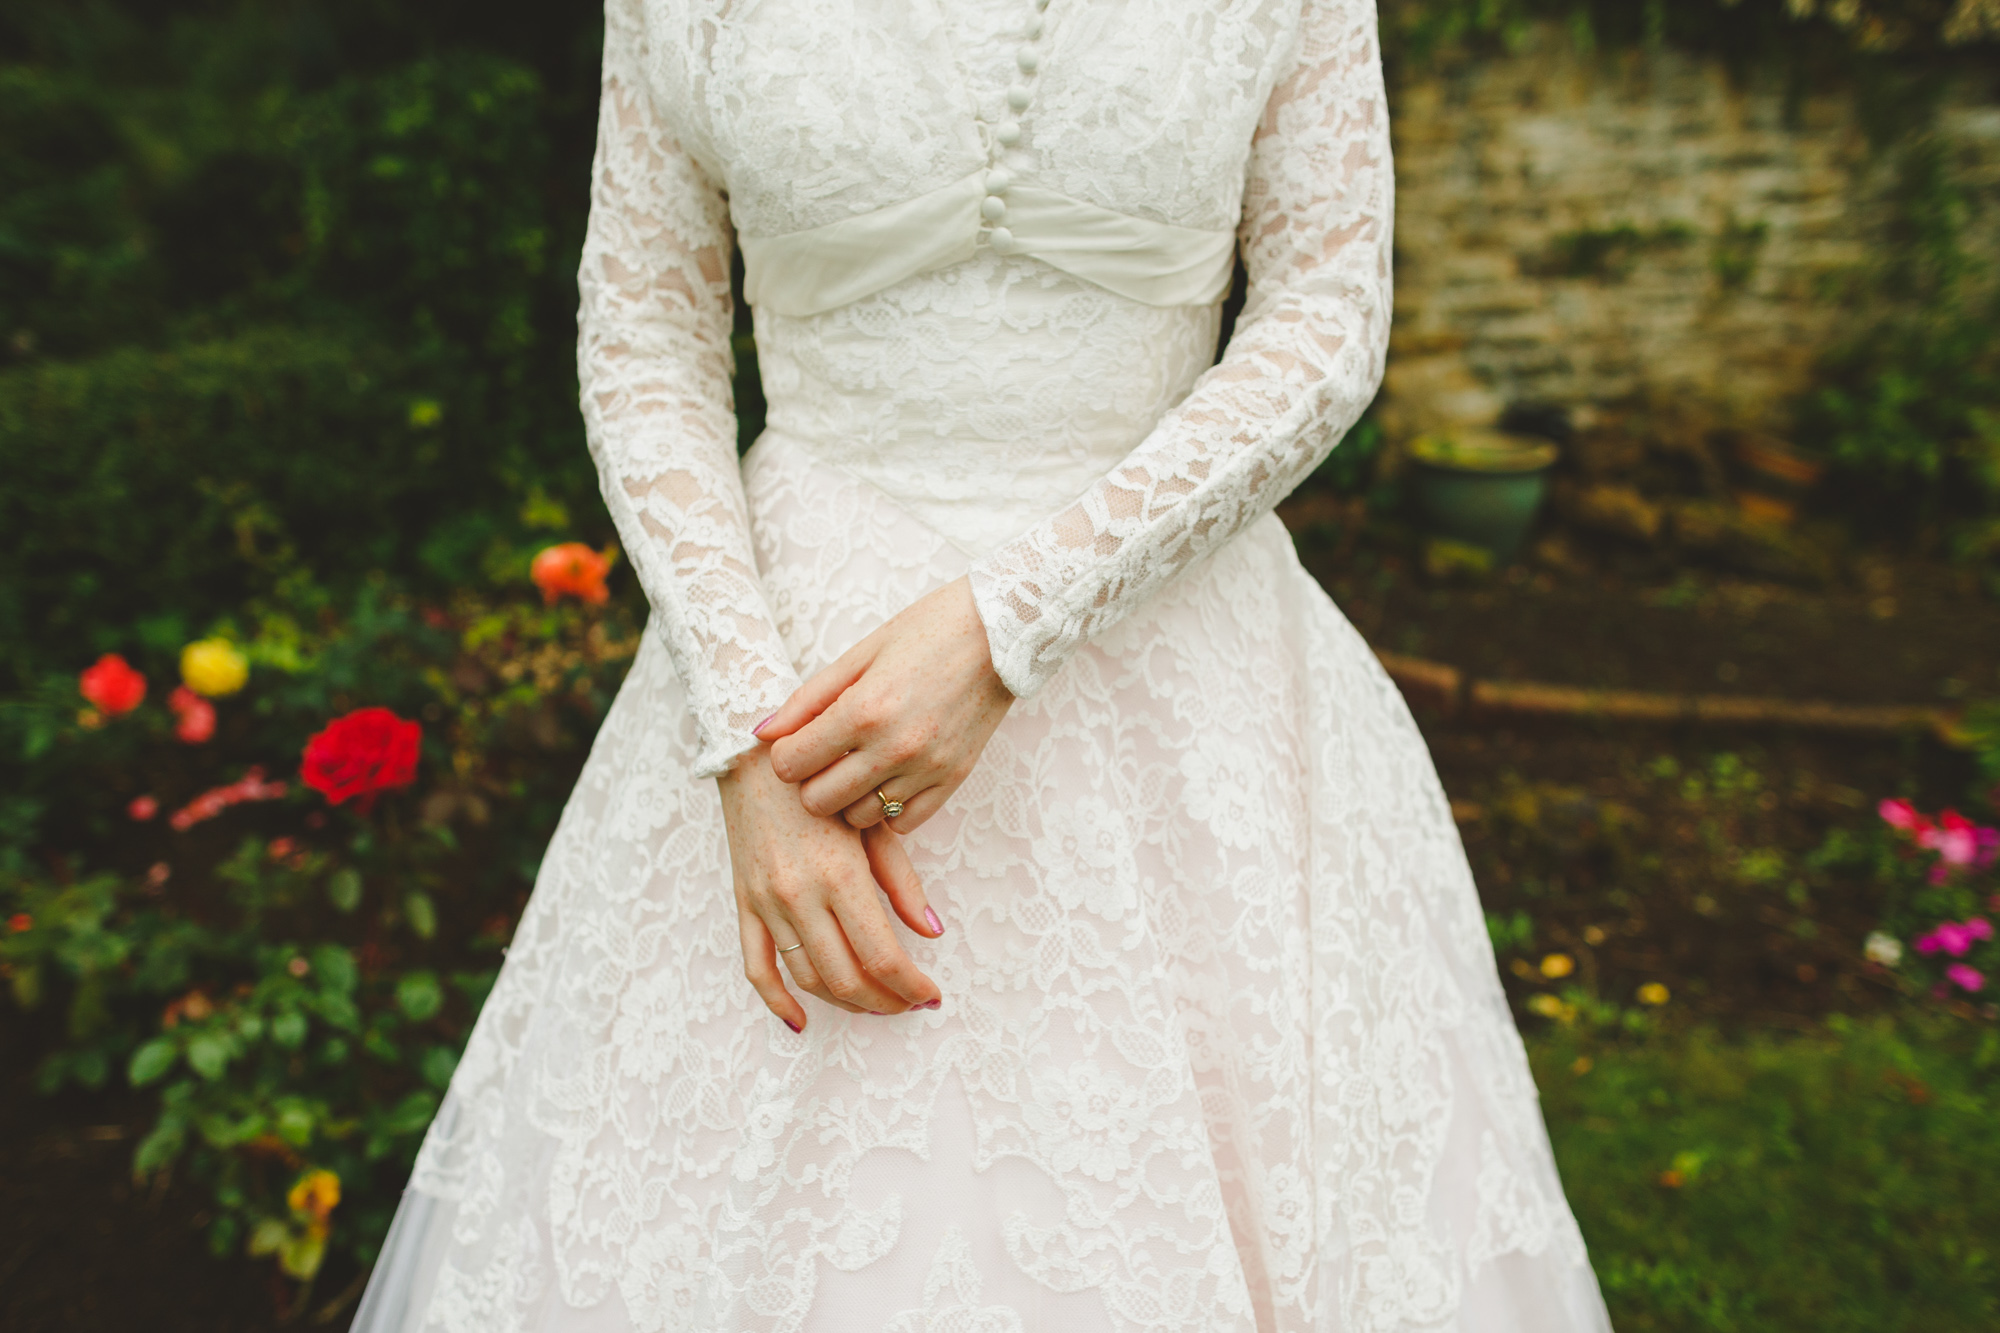 Wedding photography, bride in vintage wedding dress